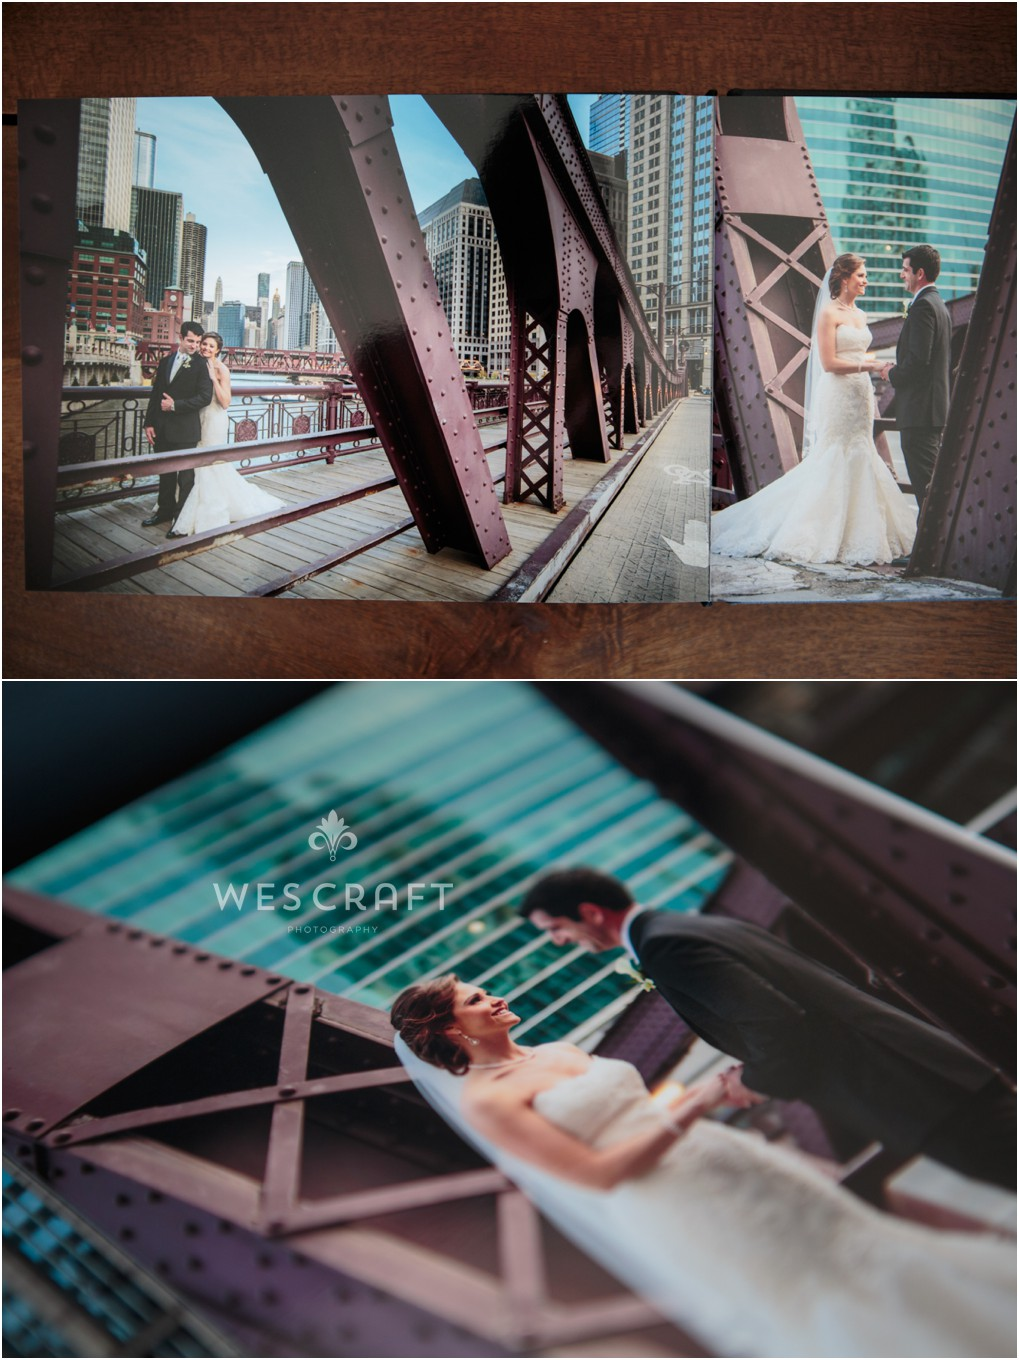 We strongly encourage having Wes Craft Photography design artwork for your home.  These photos look great in print don't they?